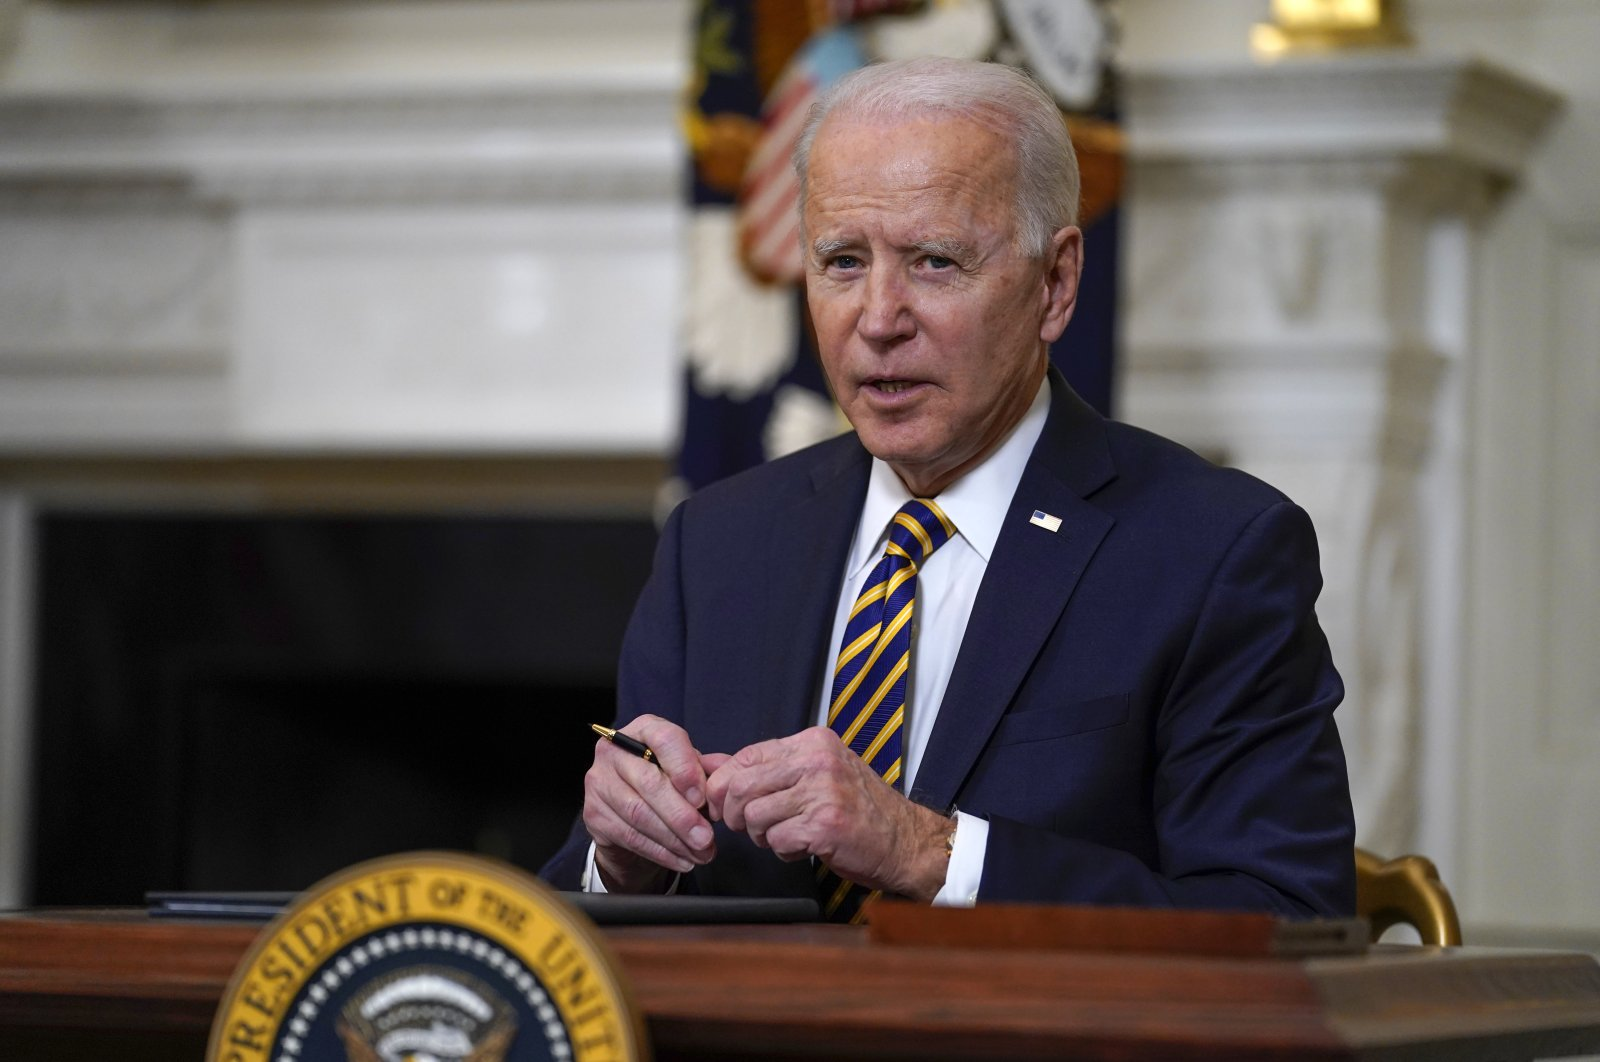 U.S. President Joe Biden pauses after signing an executive order relating to U.S. supply chains, in the State Dining Room of the White House in Washington, U.S., Feb. 24, 2021. (AP Photo)